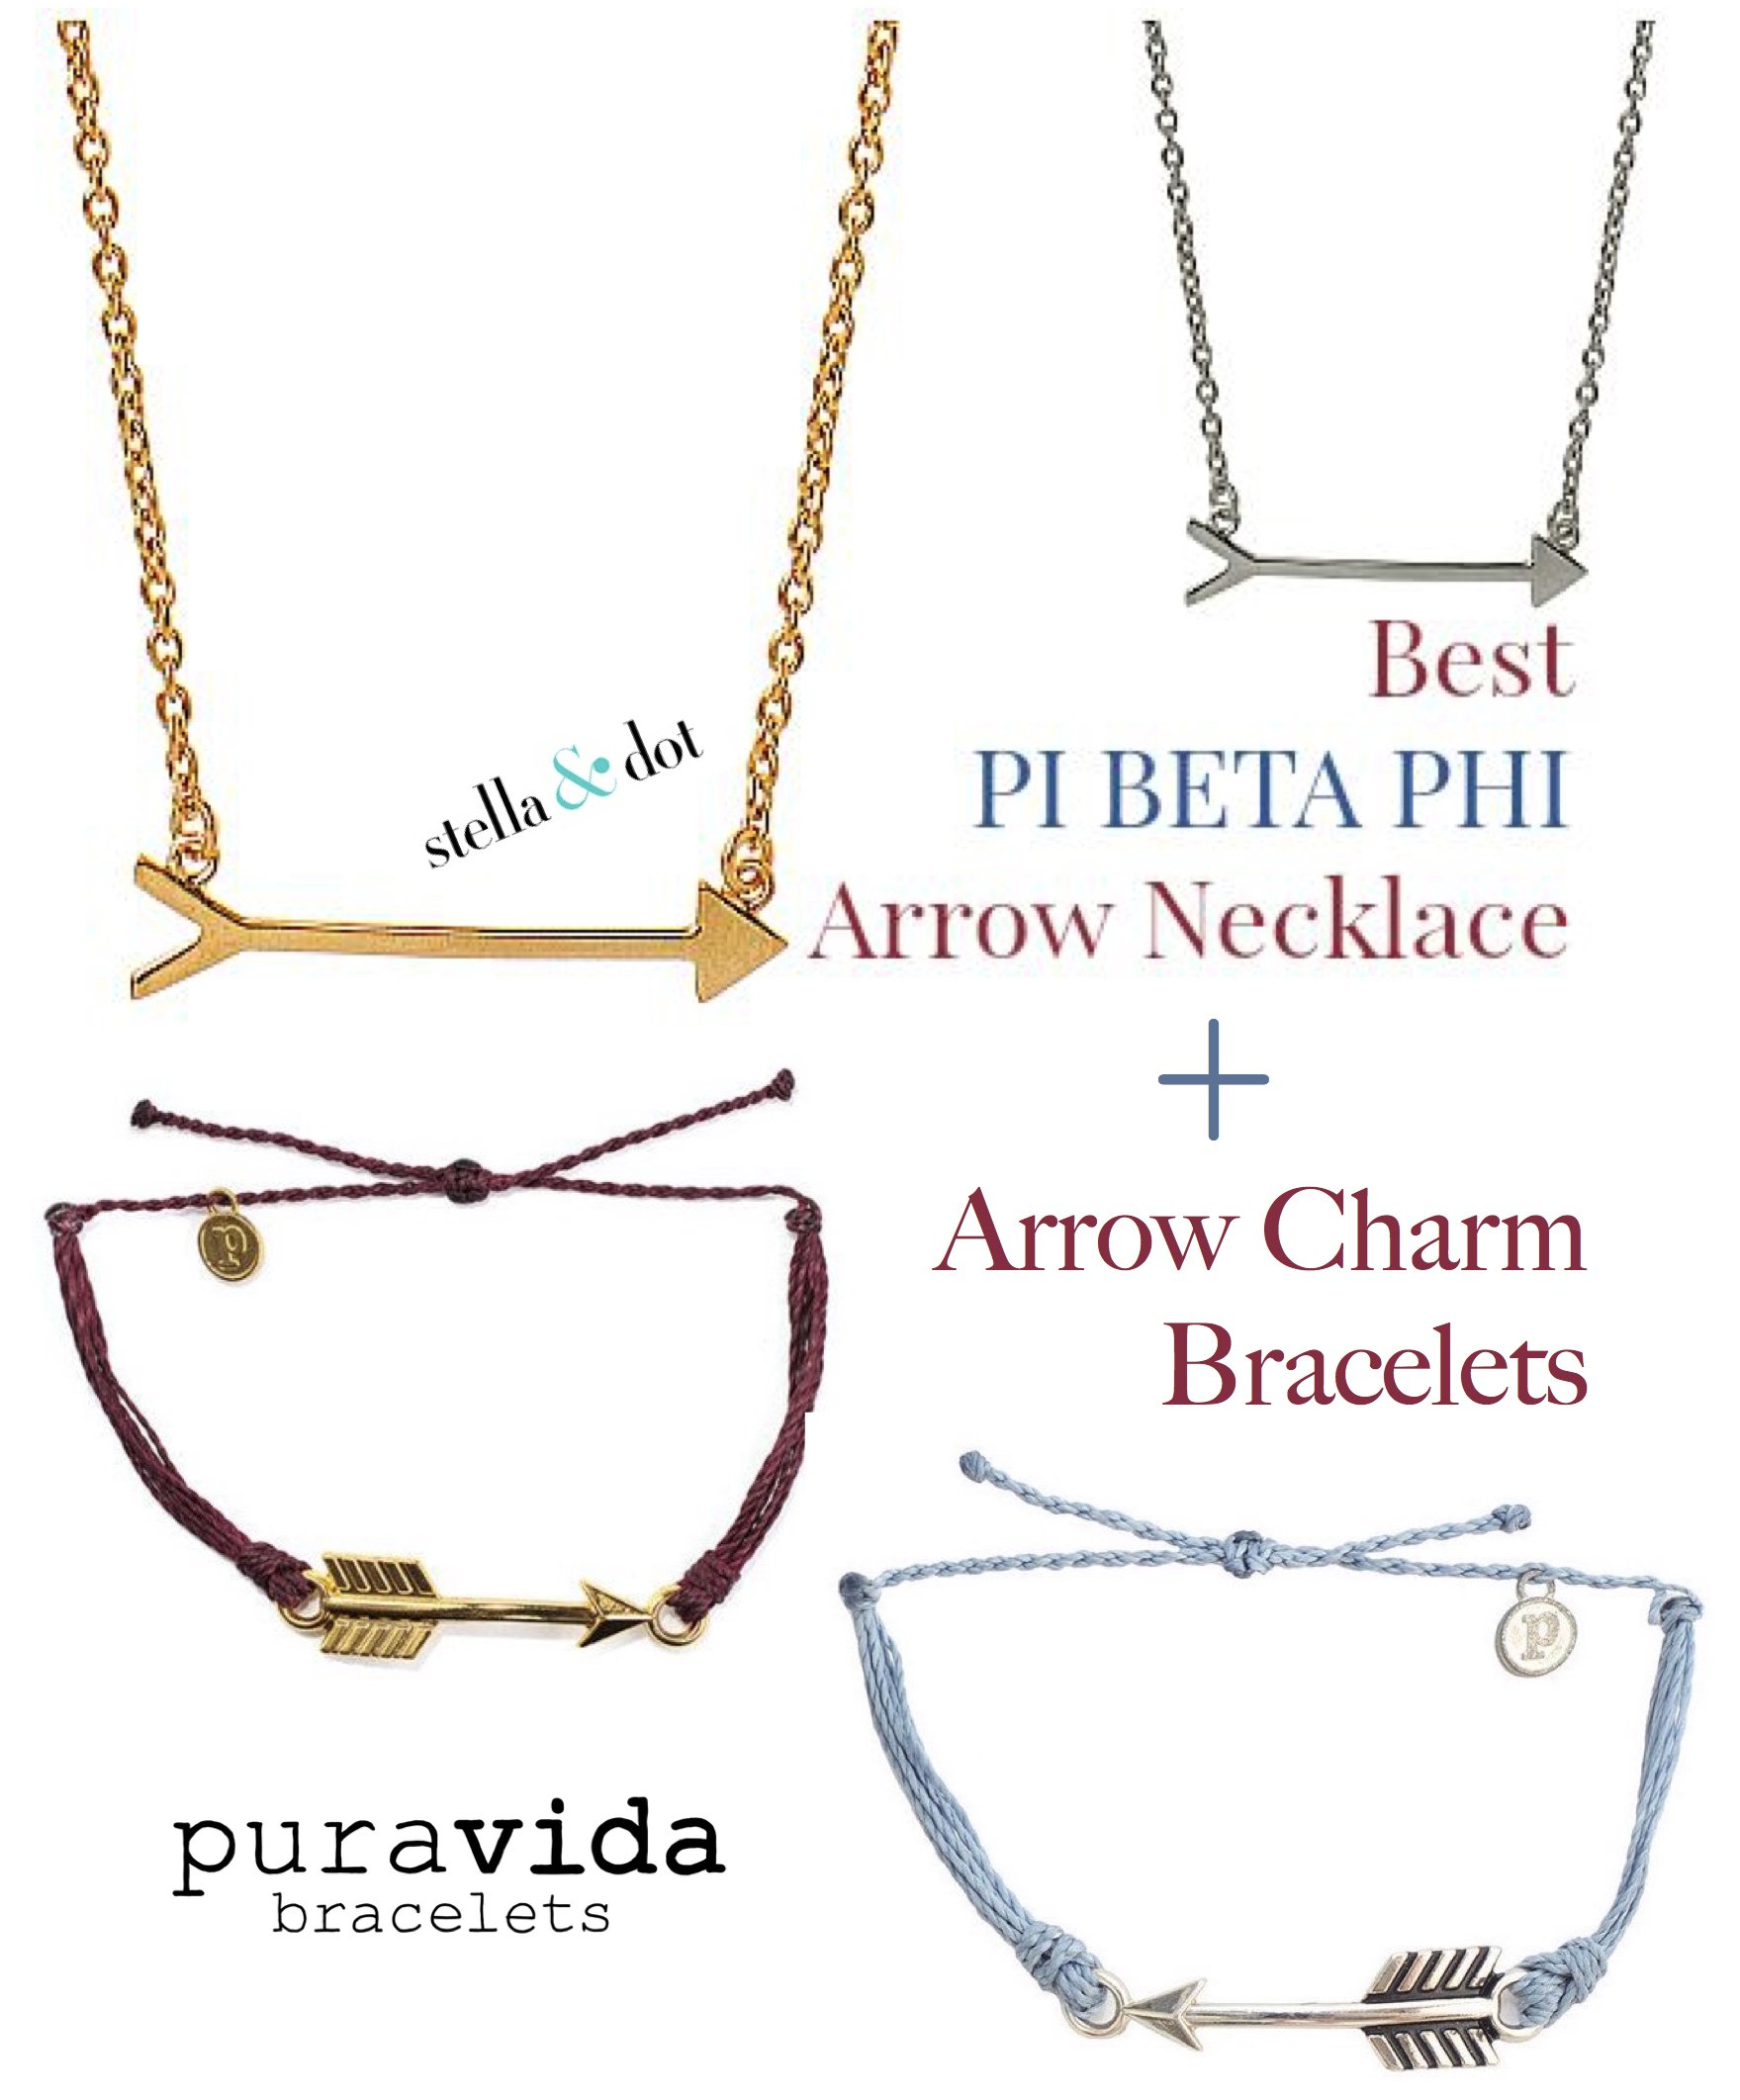 Best Pi Beta Phi Arrow Necklaces and Arrow Bracelets